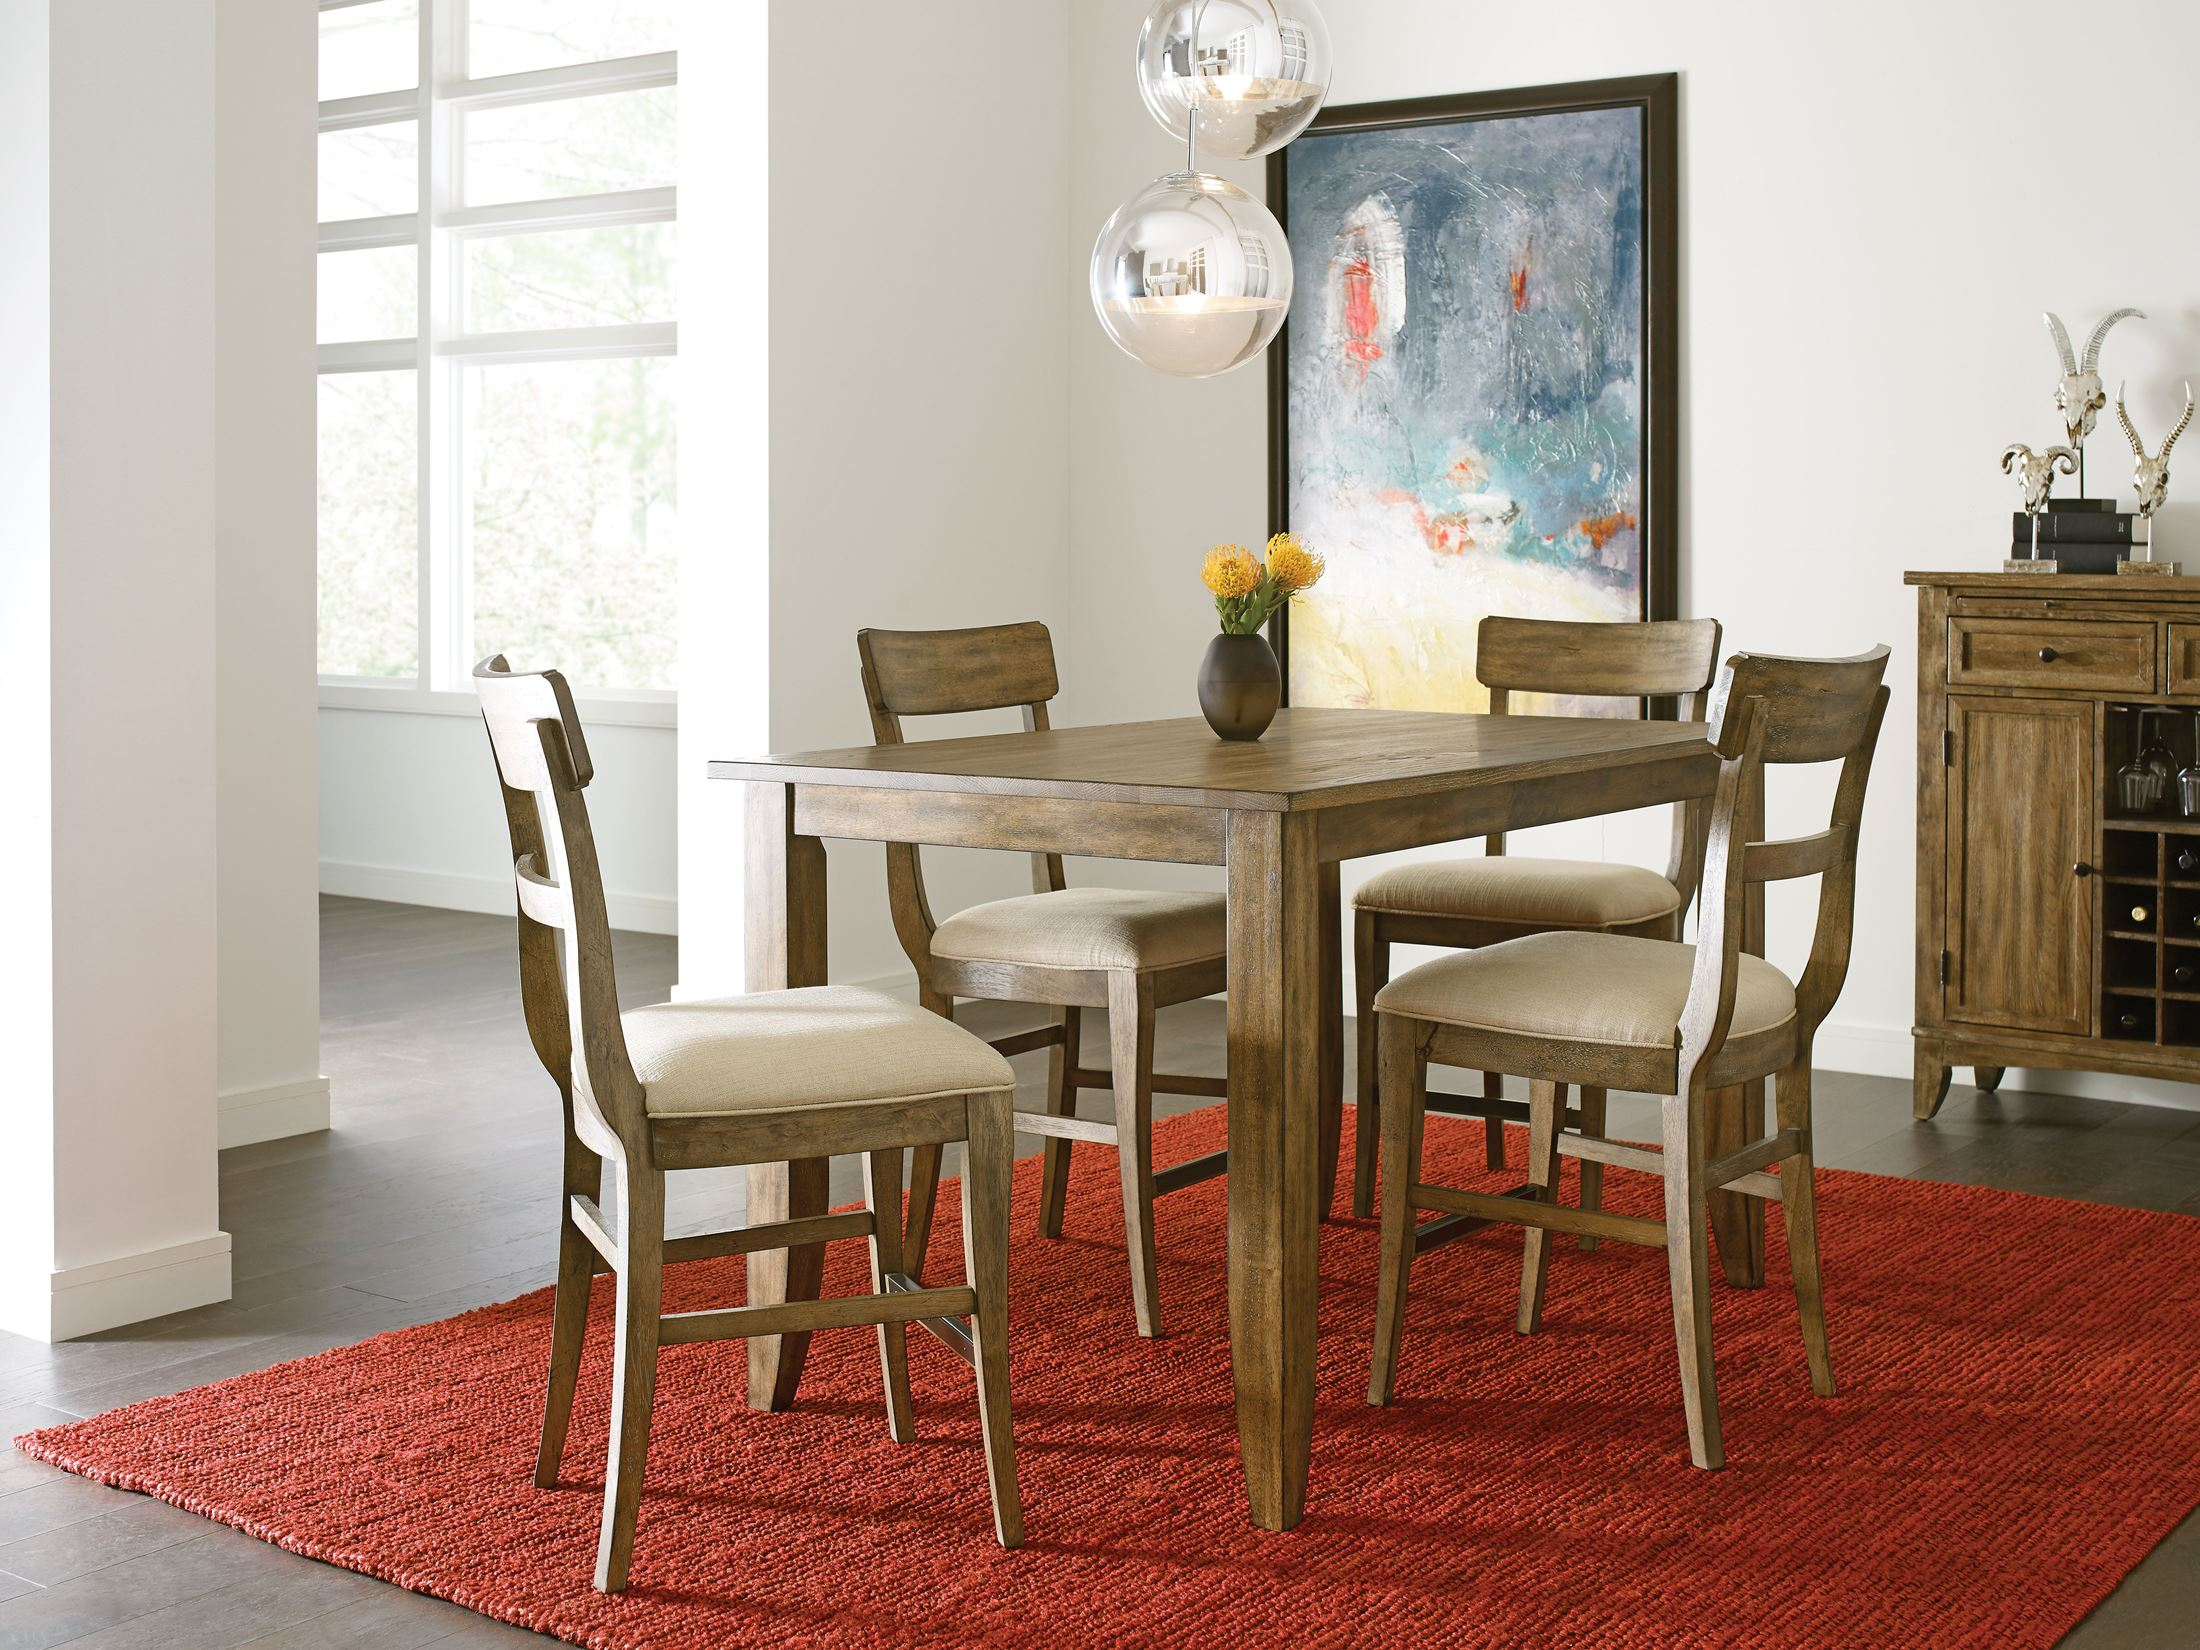 adorable counter height kitchen tables small spaces for chairs white room high folding set table island sets argos bar black dining round and glass pub accent full size burlap